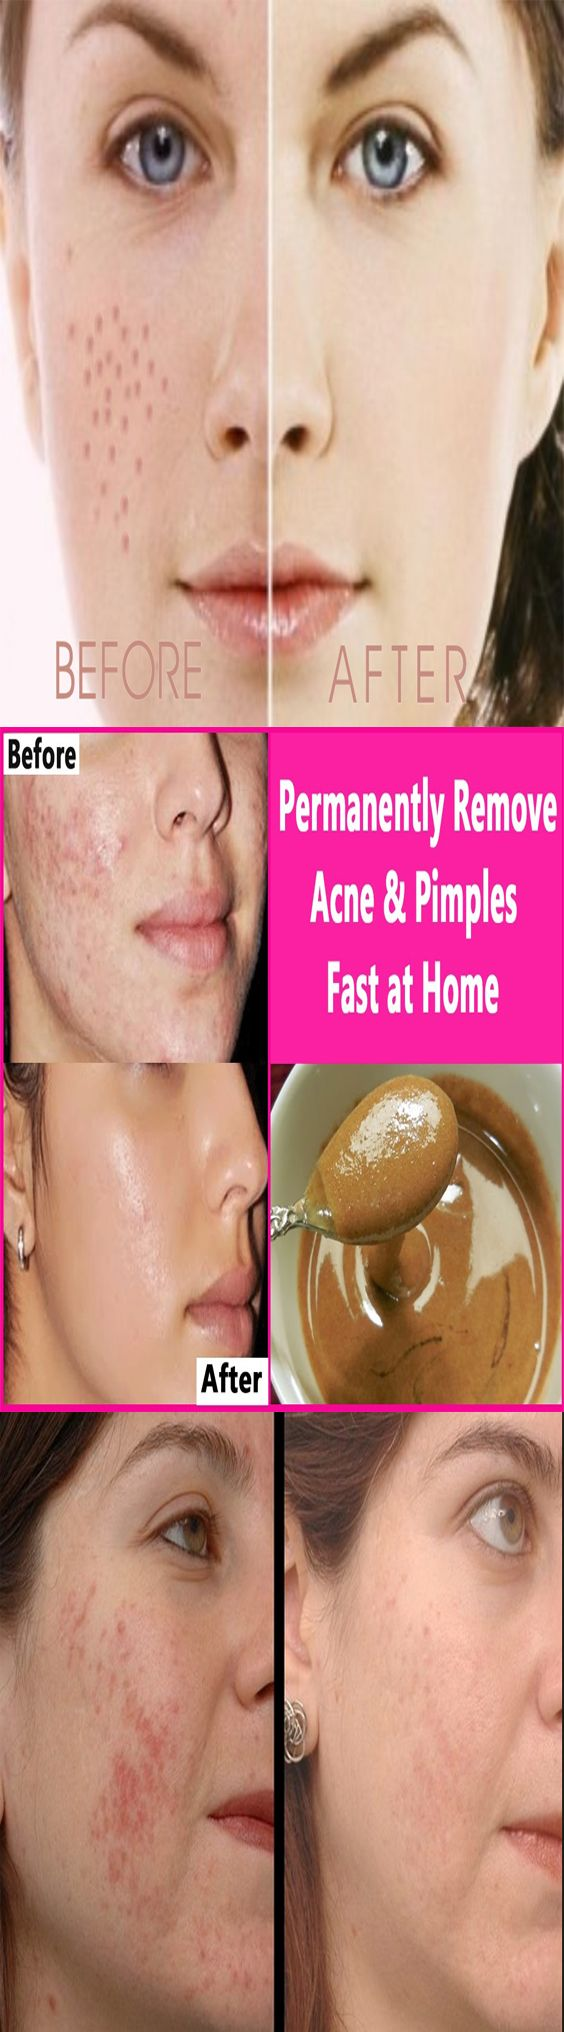 home remedies for pimples marks, how to remove pimples naturally, pimple treatment for oily skin, pimples on face treatment at home in hindi, how to remove pimples in one day, how to cure acne naturally in 3 days, how to remove pimples naturally and permanently, how to cure pimples in one day,